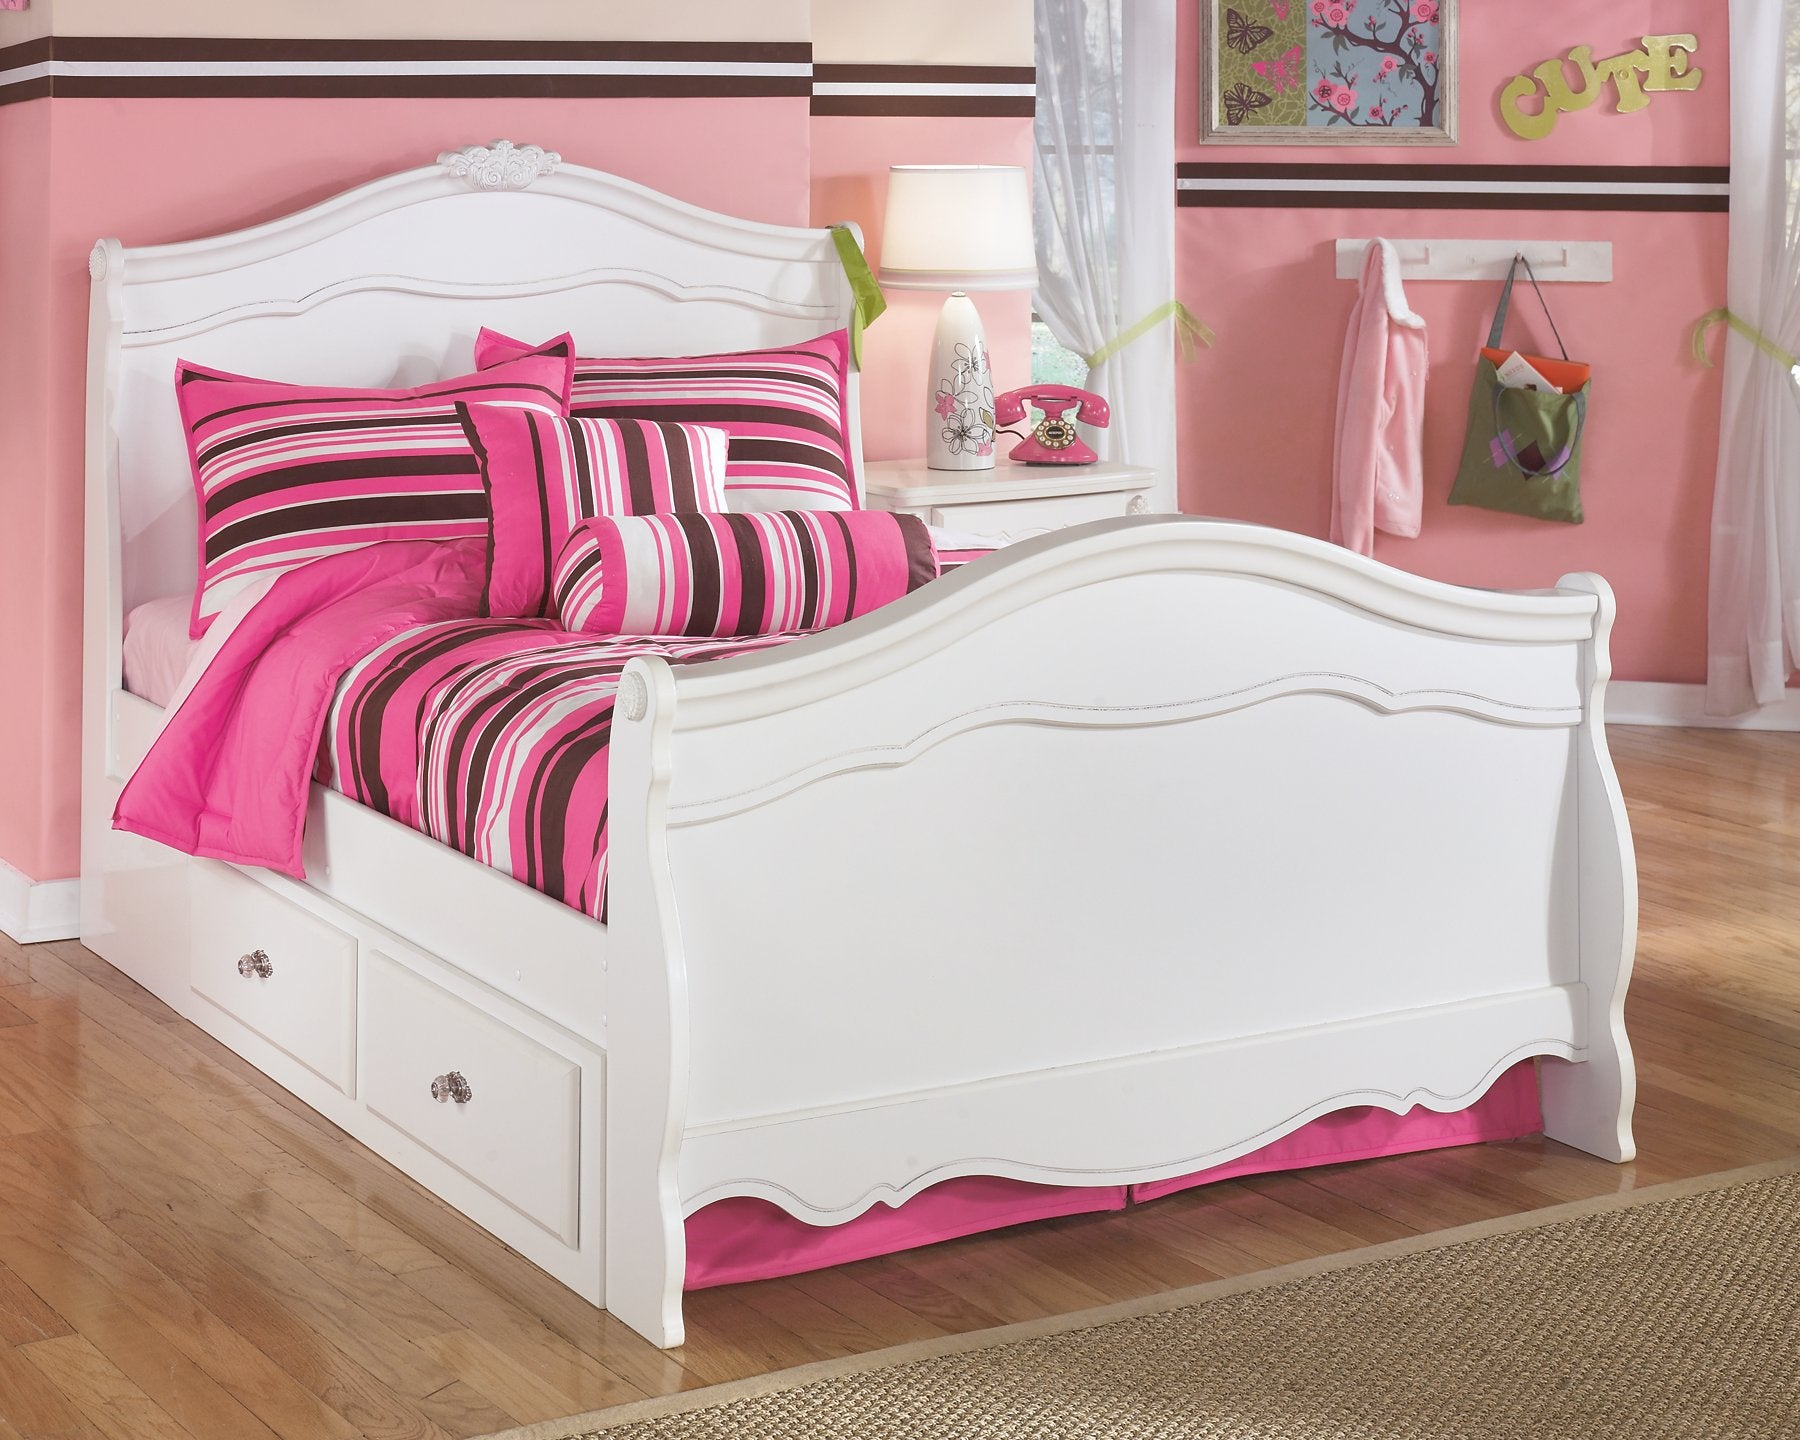 Exquisite Signature Design by Ashley Bed with 4 Storage Drawers image